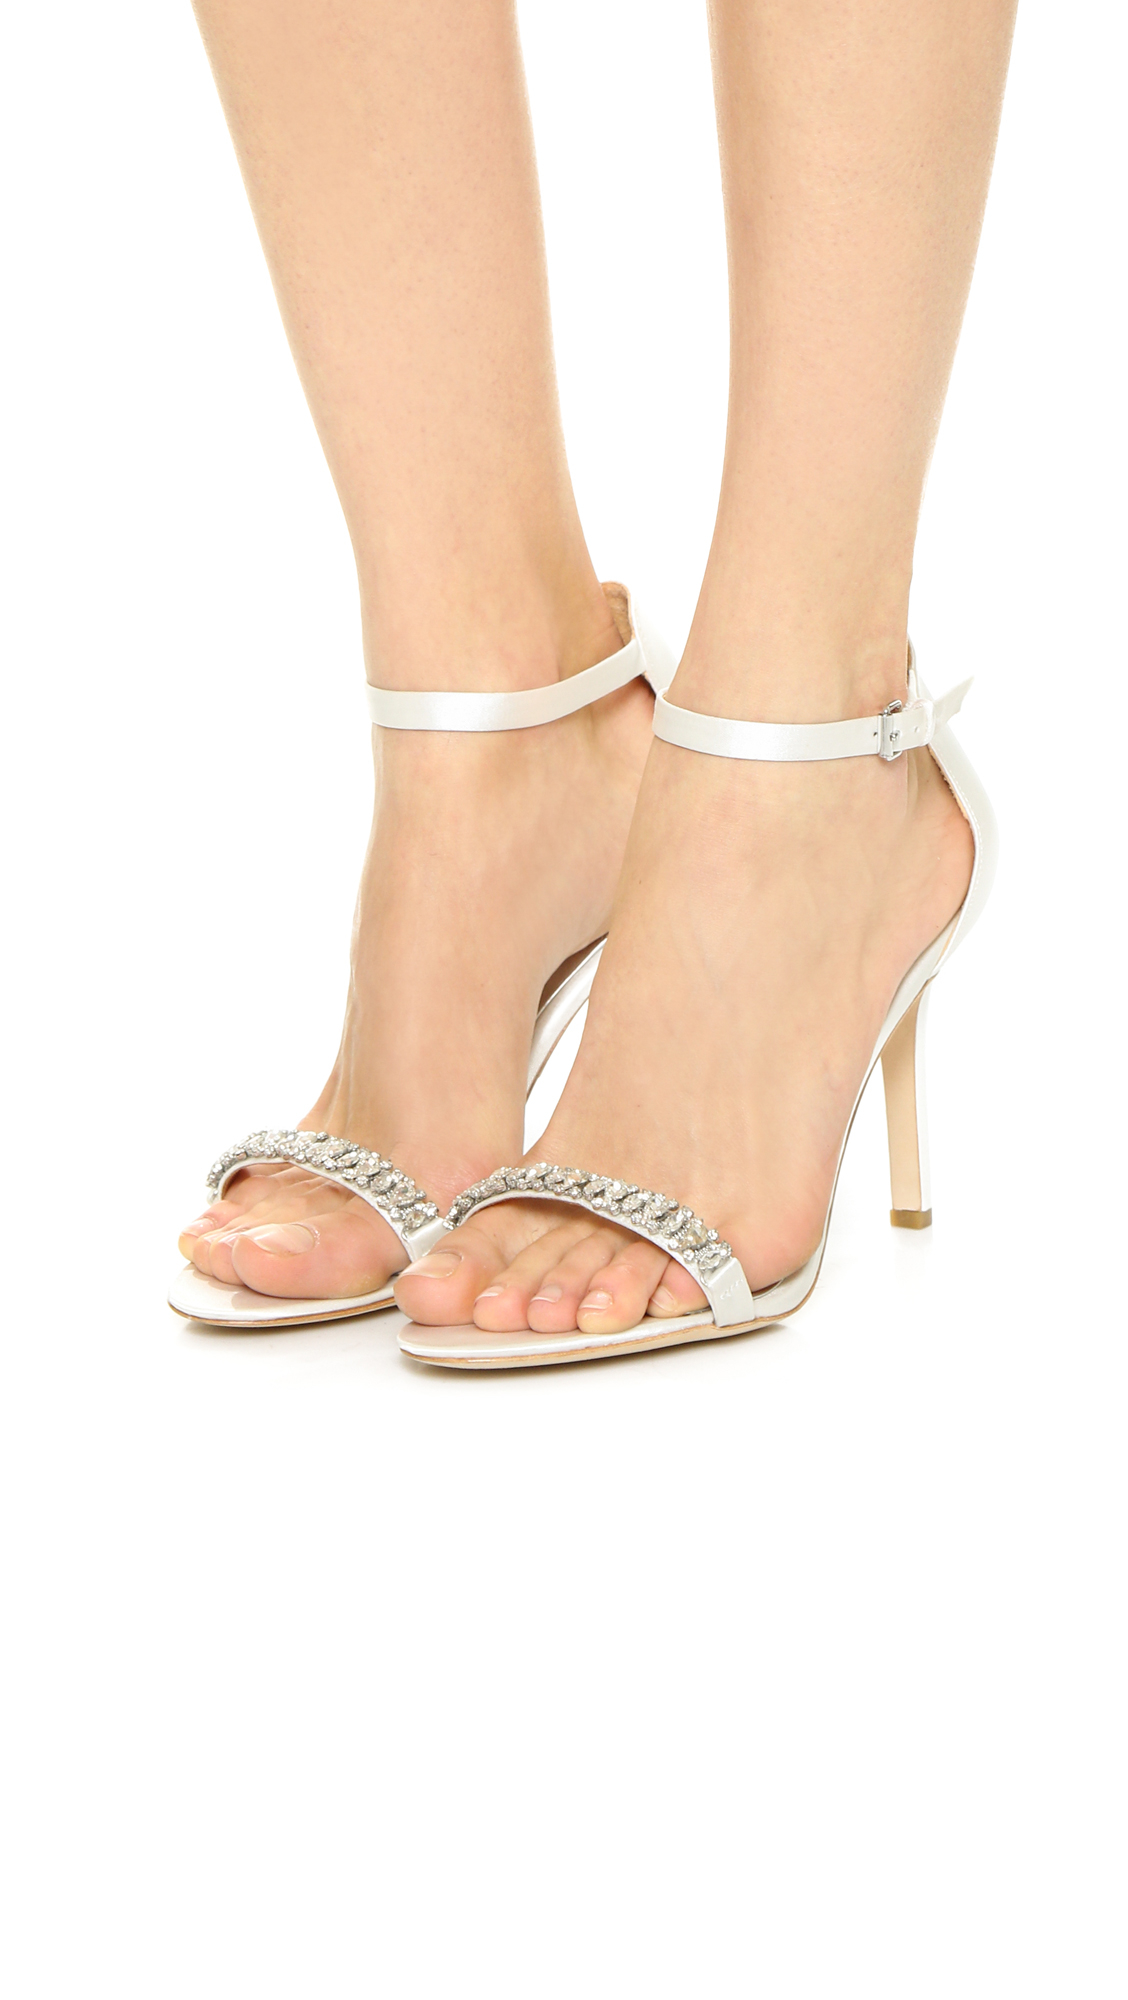 nordstrom wedding shoes lyst badgley mischka elope jeweled sandals white in white 6198